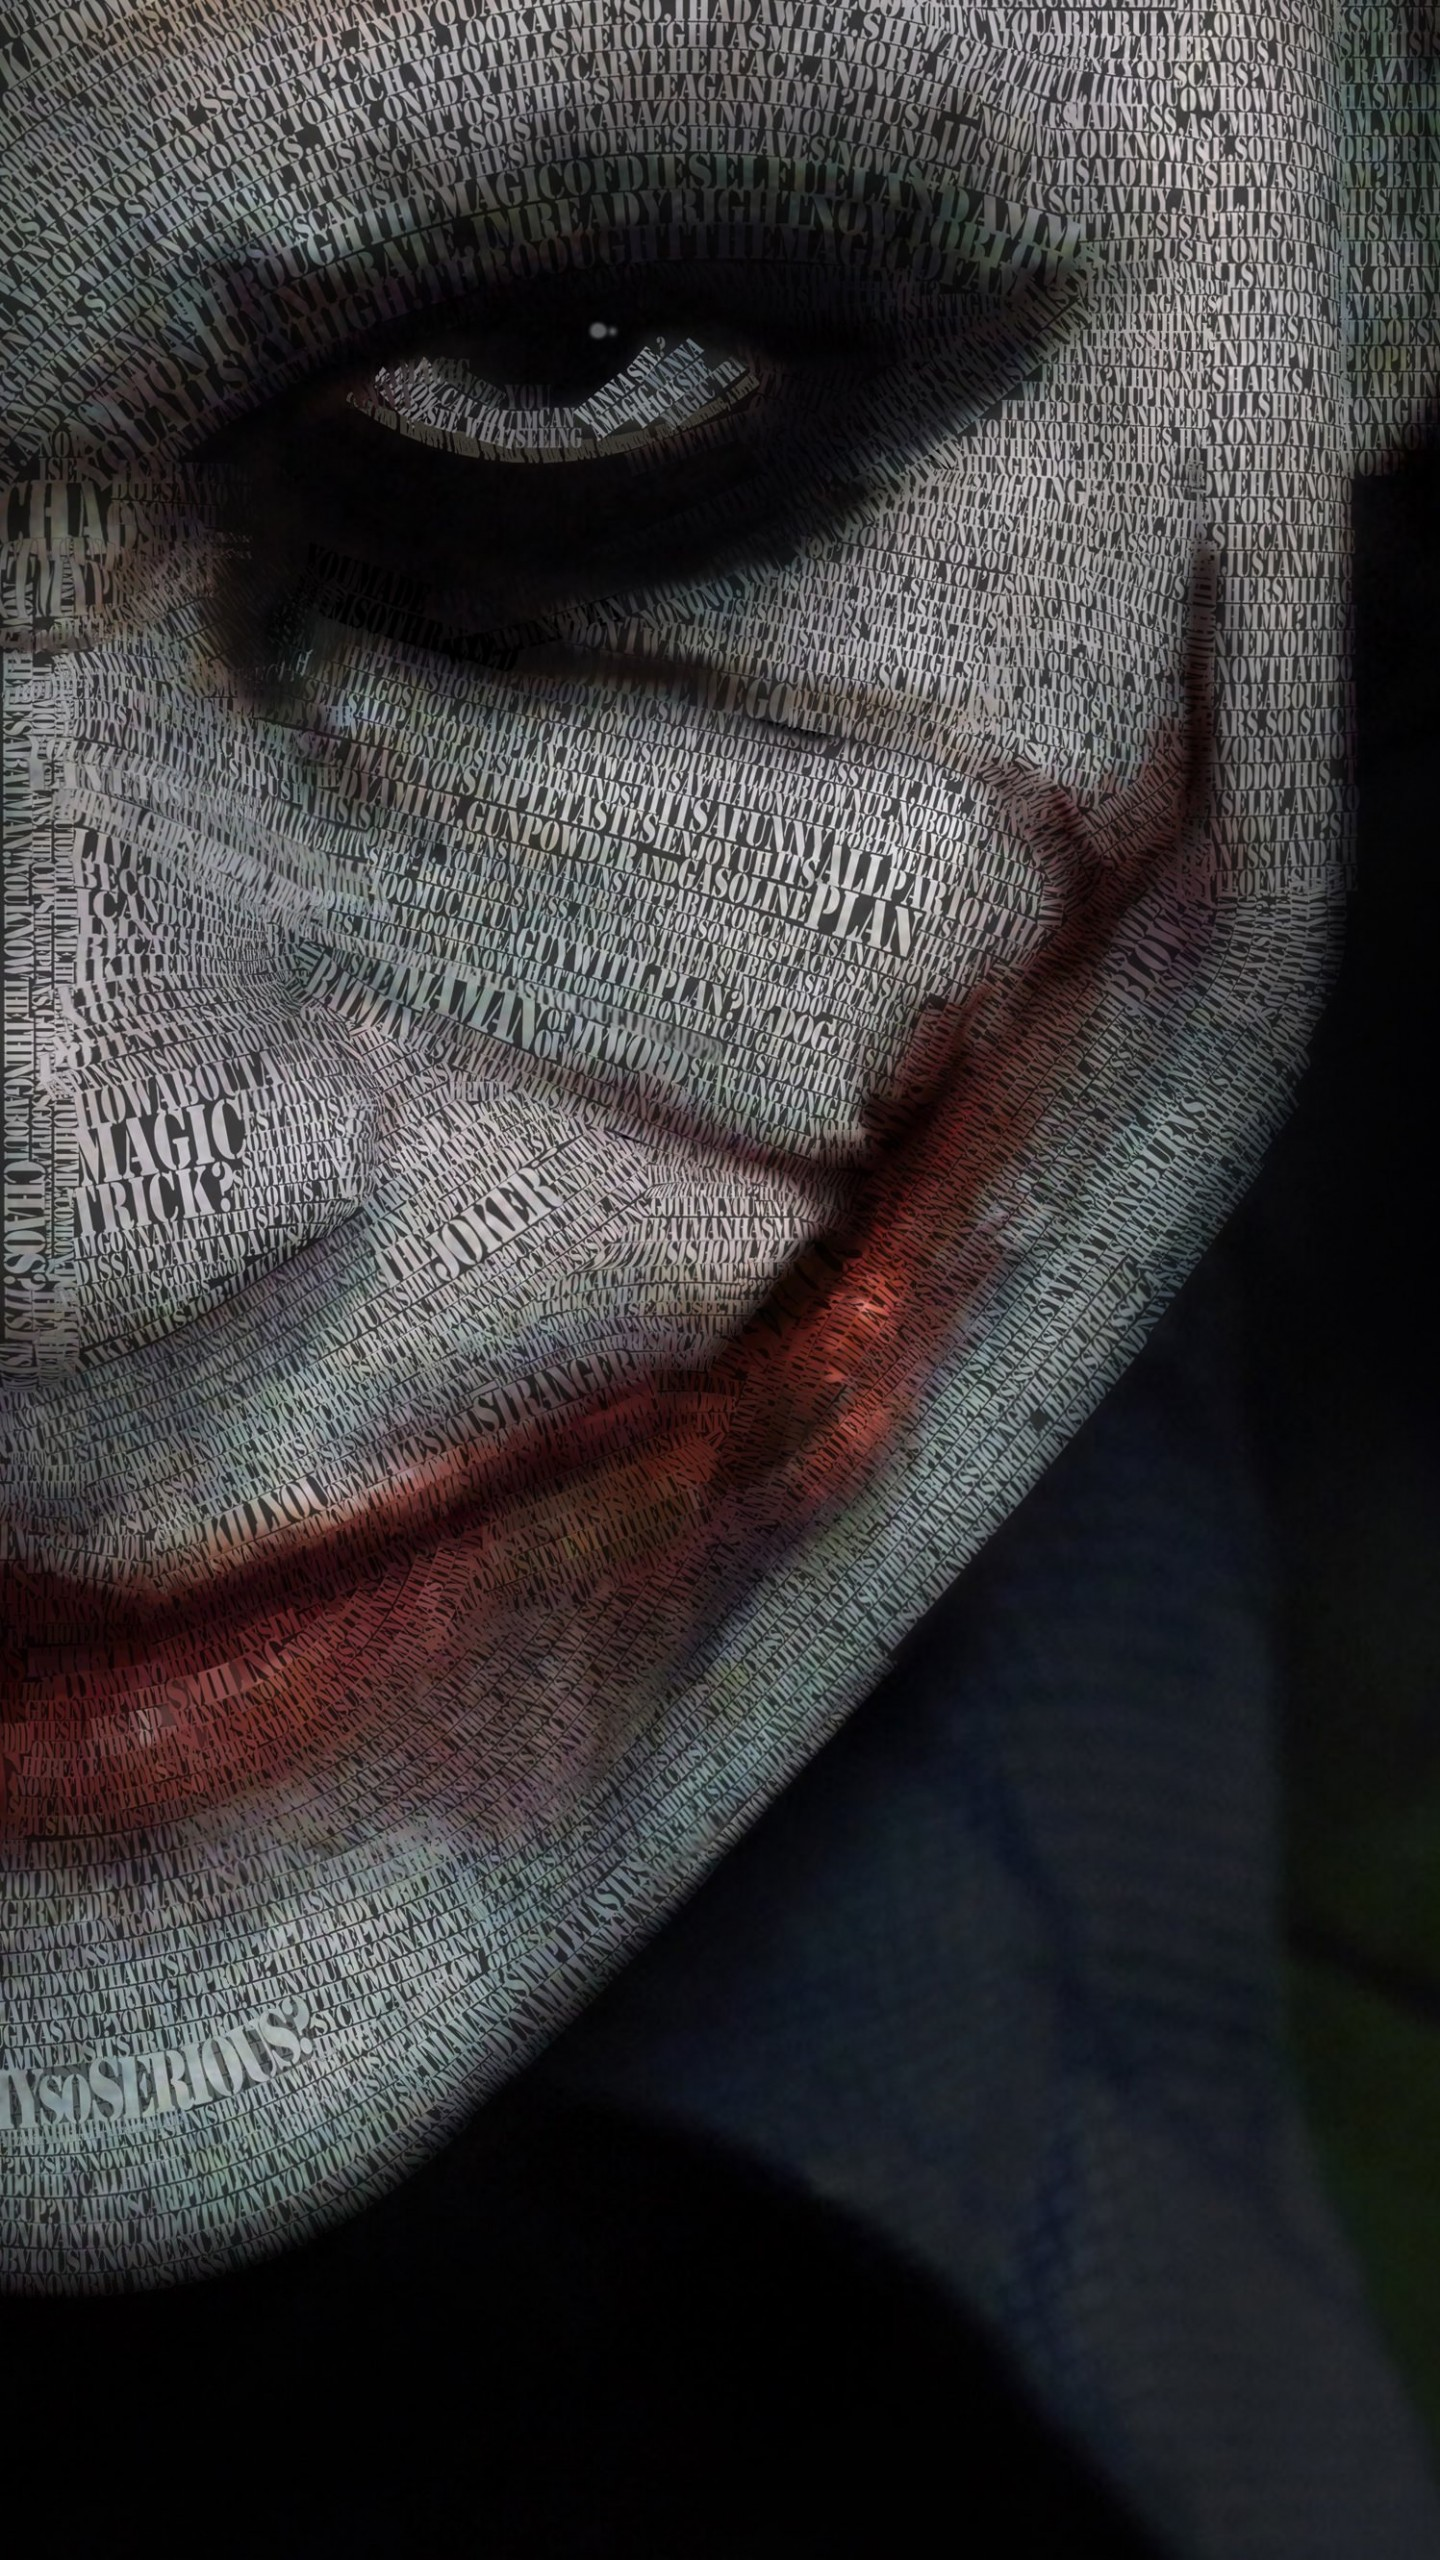 The Joker Typeface Portrait Wallpaper for SAMSUNG Galaxy Note 4